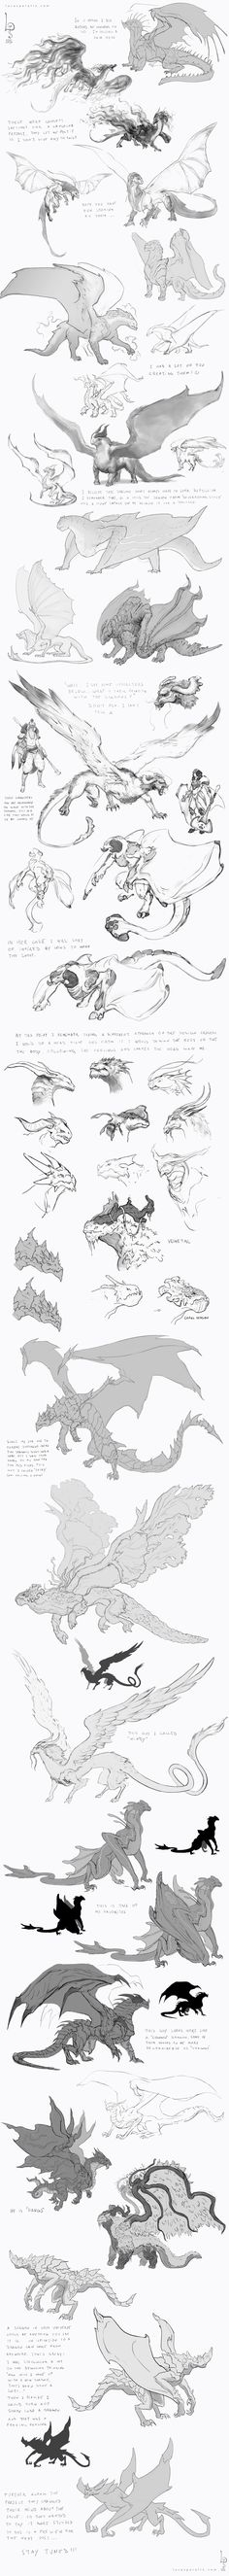 continuing my previous post, these are Concept Sketches done early The project was cancelled, so they let me post as long as I don't give any information about it and the Company behind the project. Heres 3 weeks of sketch explorations, Magical Creatures, Fantasy Creatures, Dragon Poses, Dragon Anatomy, Cool Dragons, Dragon Design, Creature Concept, Dragon Art, Creature Design